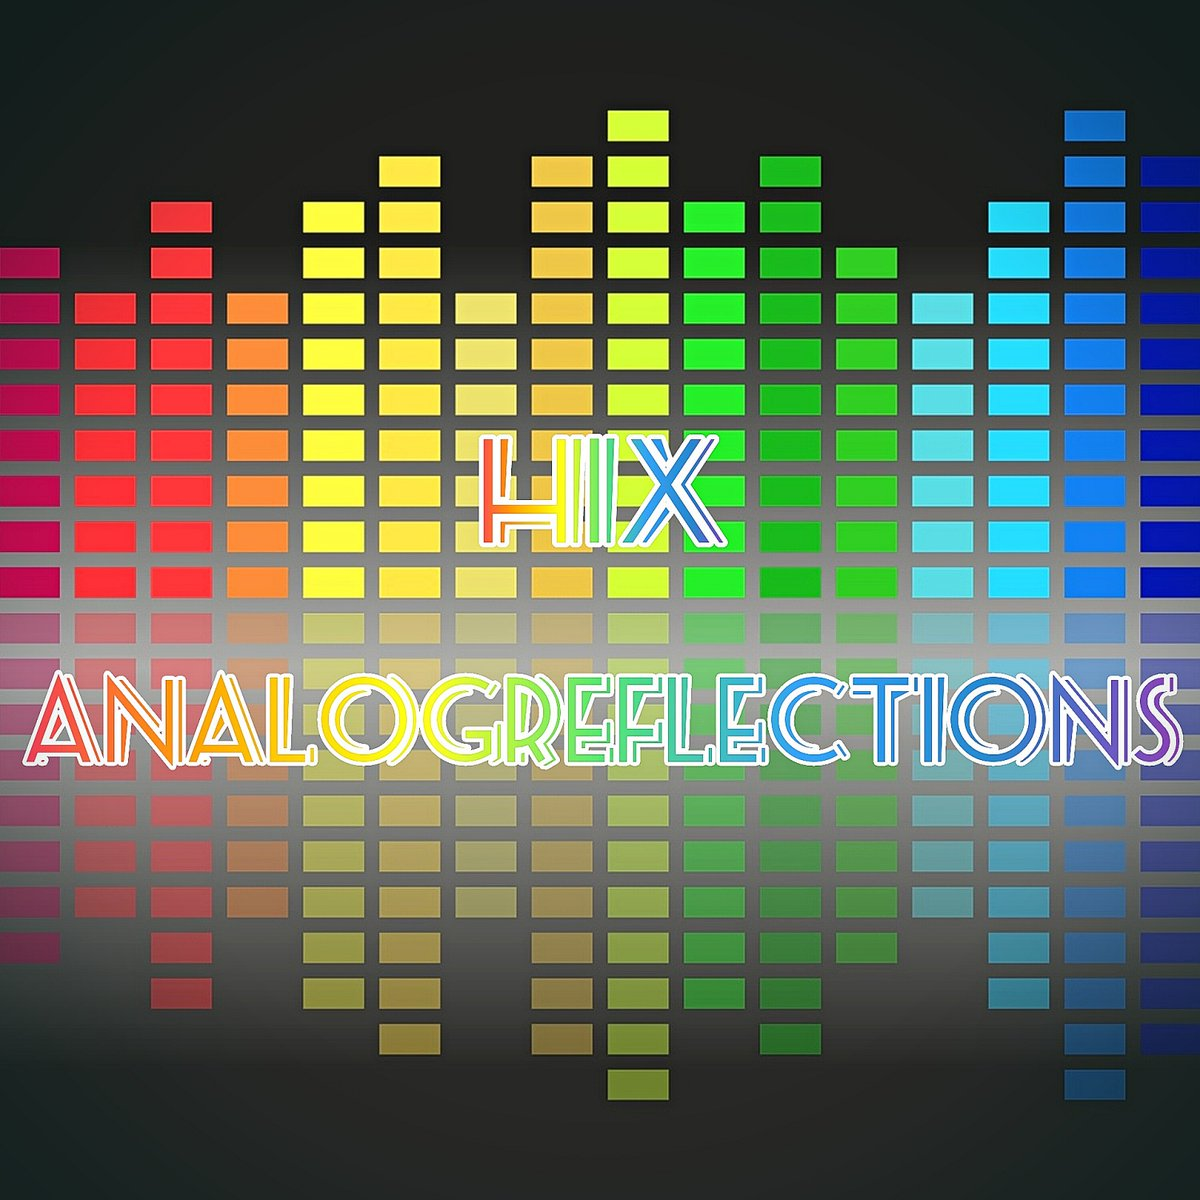 """Analogreflections"" appears soon. Here we present you the cover of HIX new work! #ISRH https://t.co/RJPk3vOhyA"